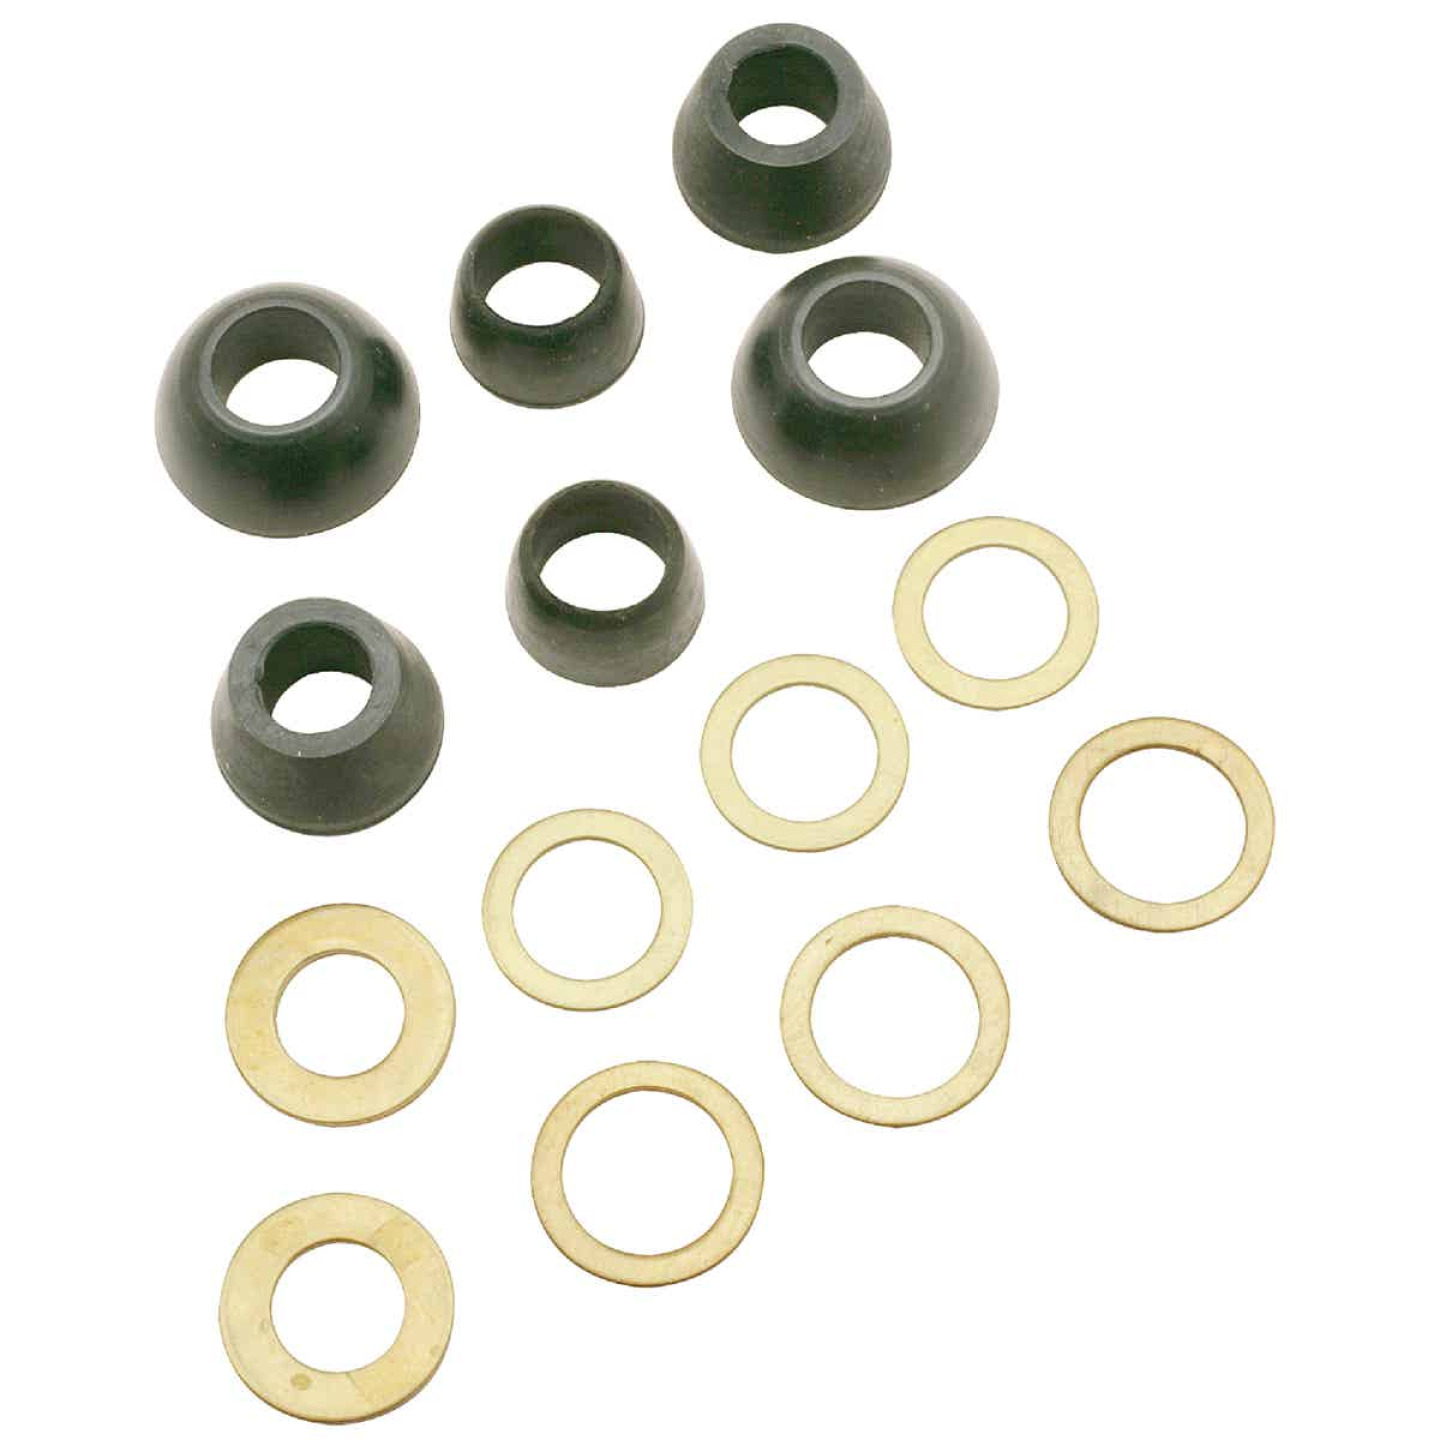 Do it Cone Shape Slip-Joint Washer And Friction Ring Assortment (15 Ct.) Image 1